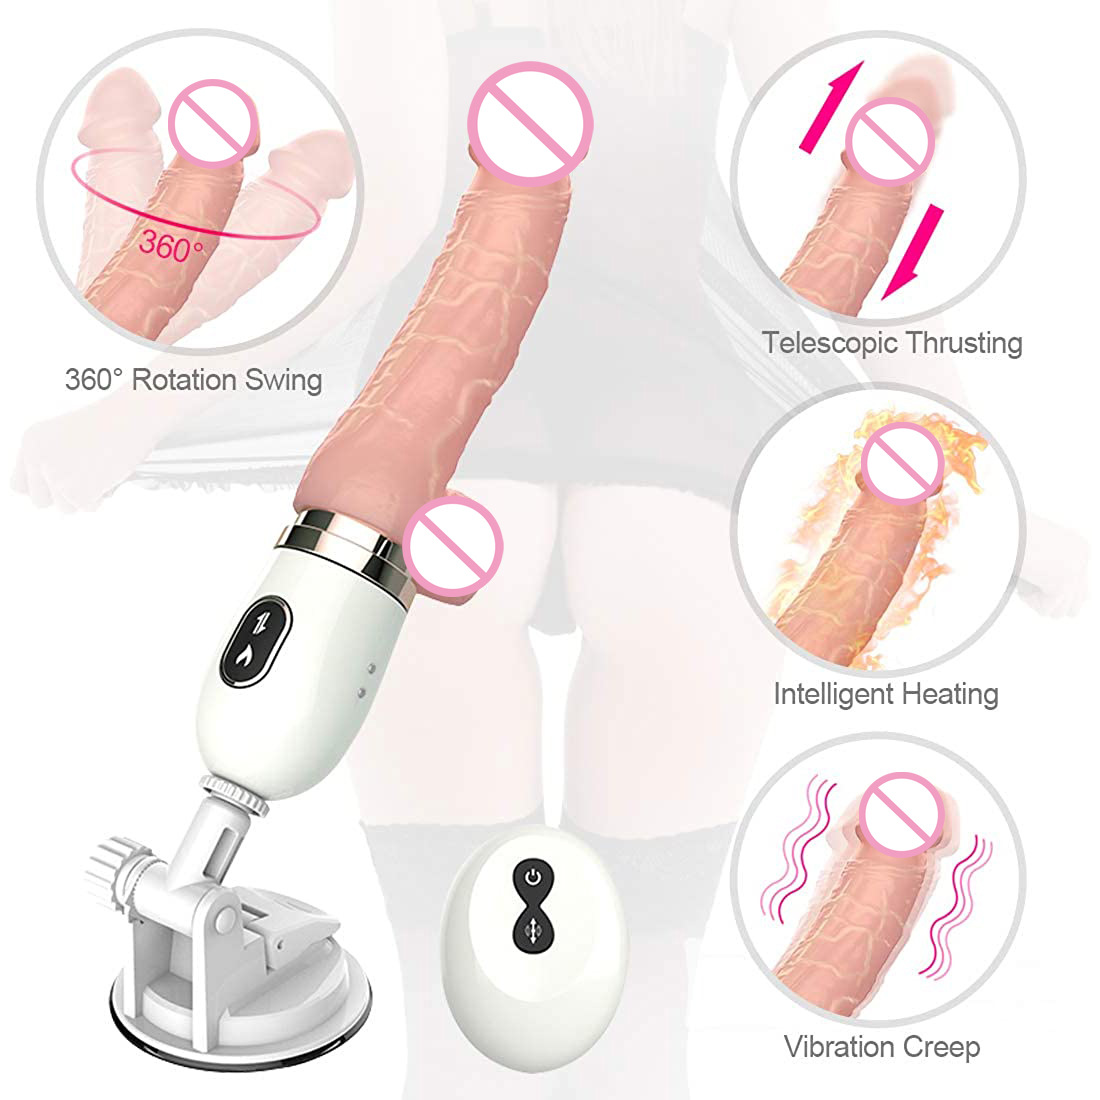 Automatic Thrusting Dildo G Spot Vibrator With Suction Cup Sex Toy For Women Hand-free Sex Fun Vibrator Massage machine MINI model without remote control